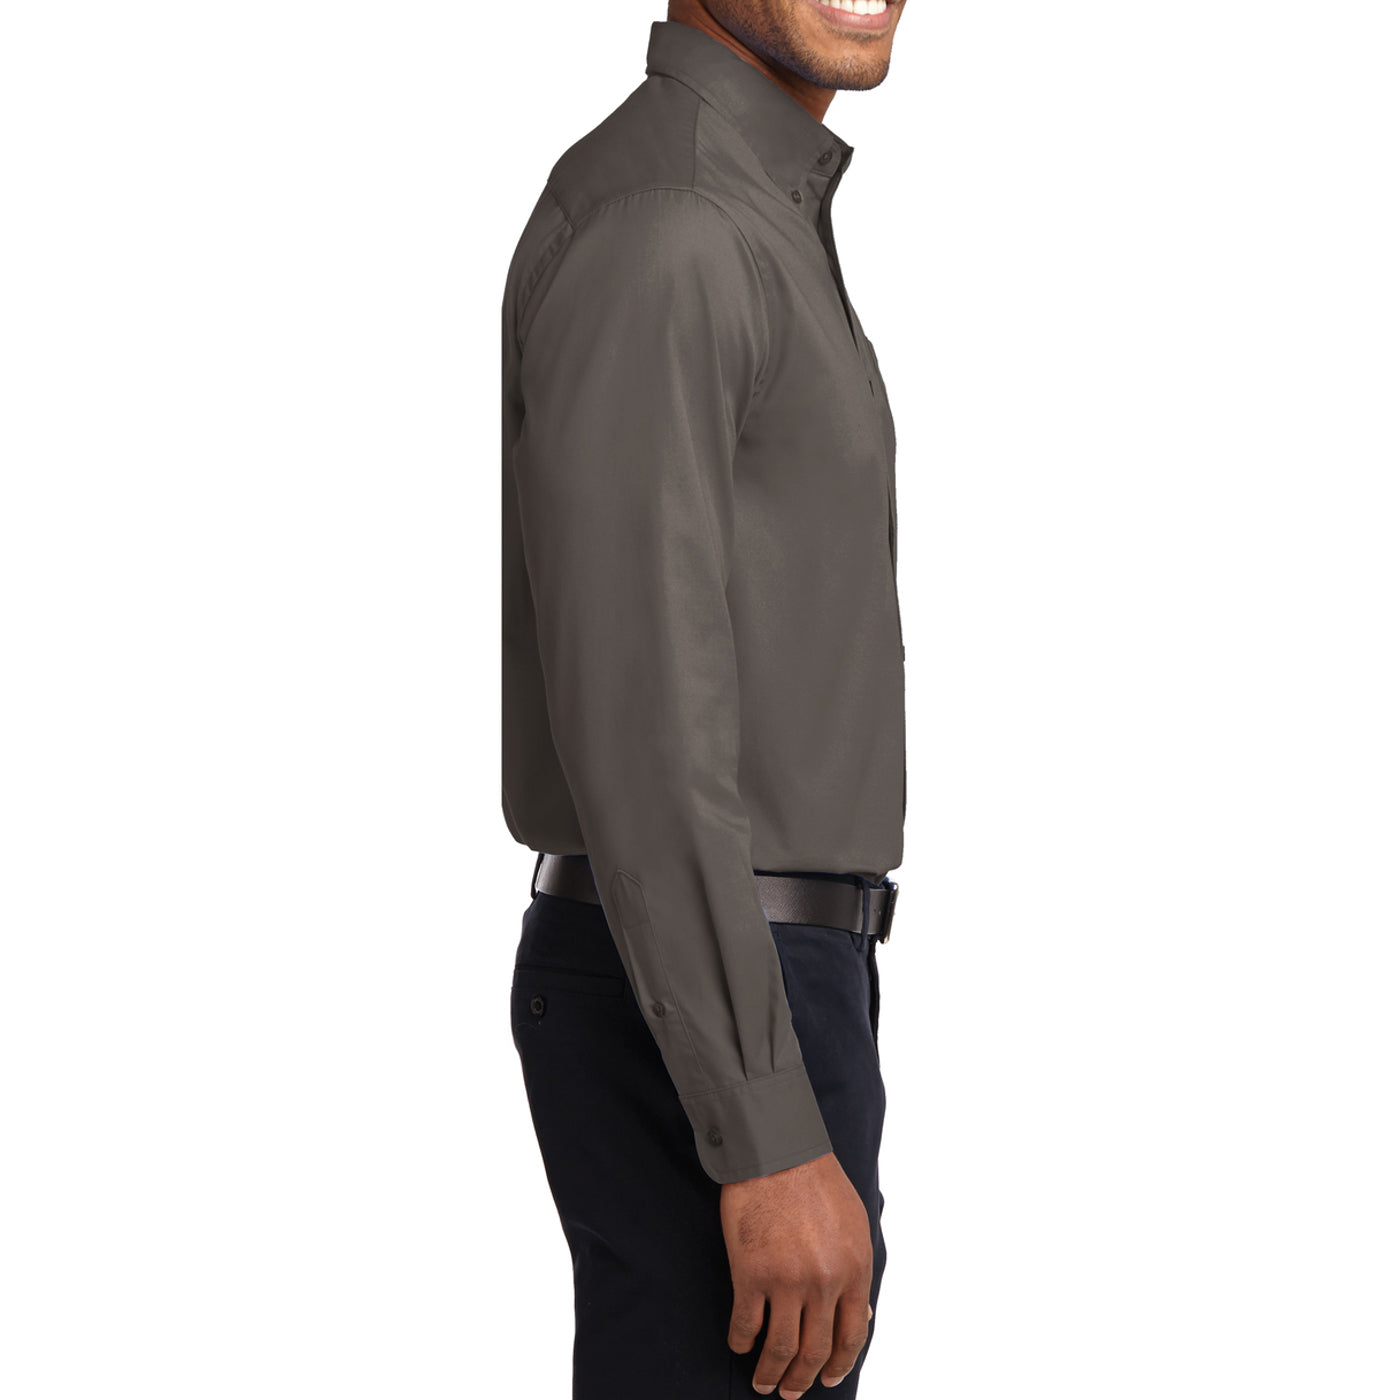 Men's Long Sleeve Easy Care Shirt - Bark - Side